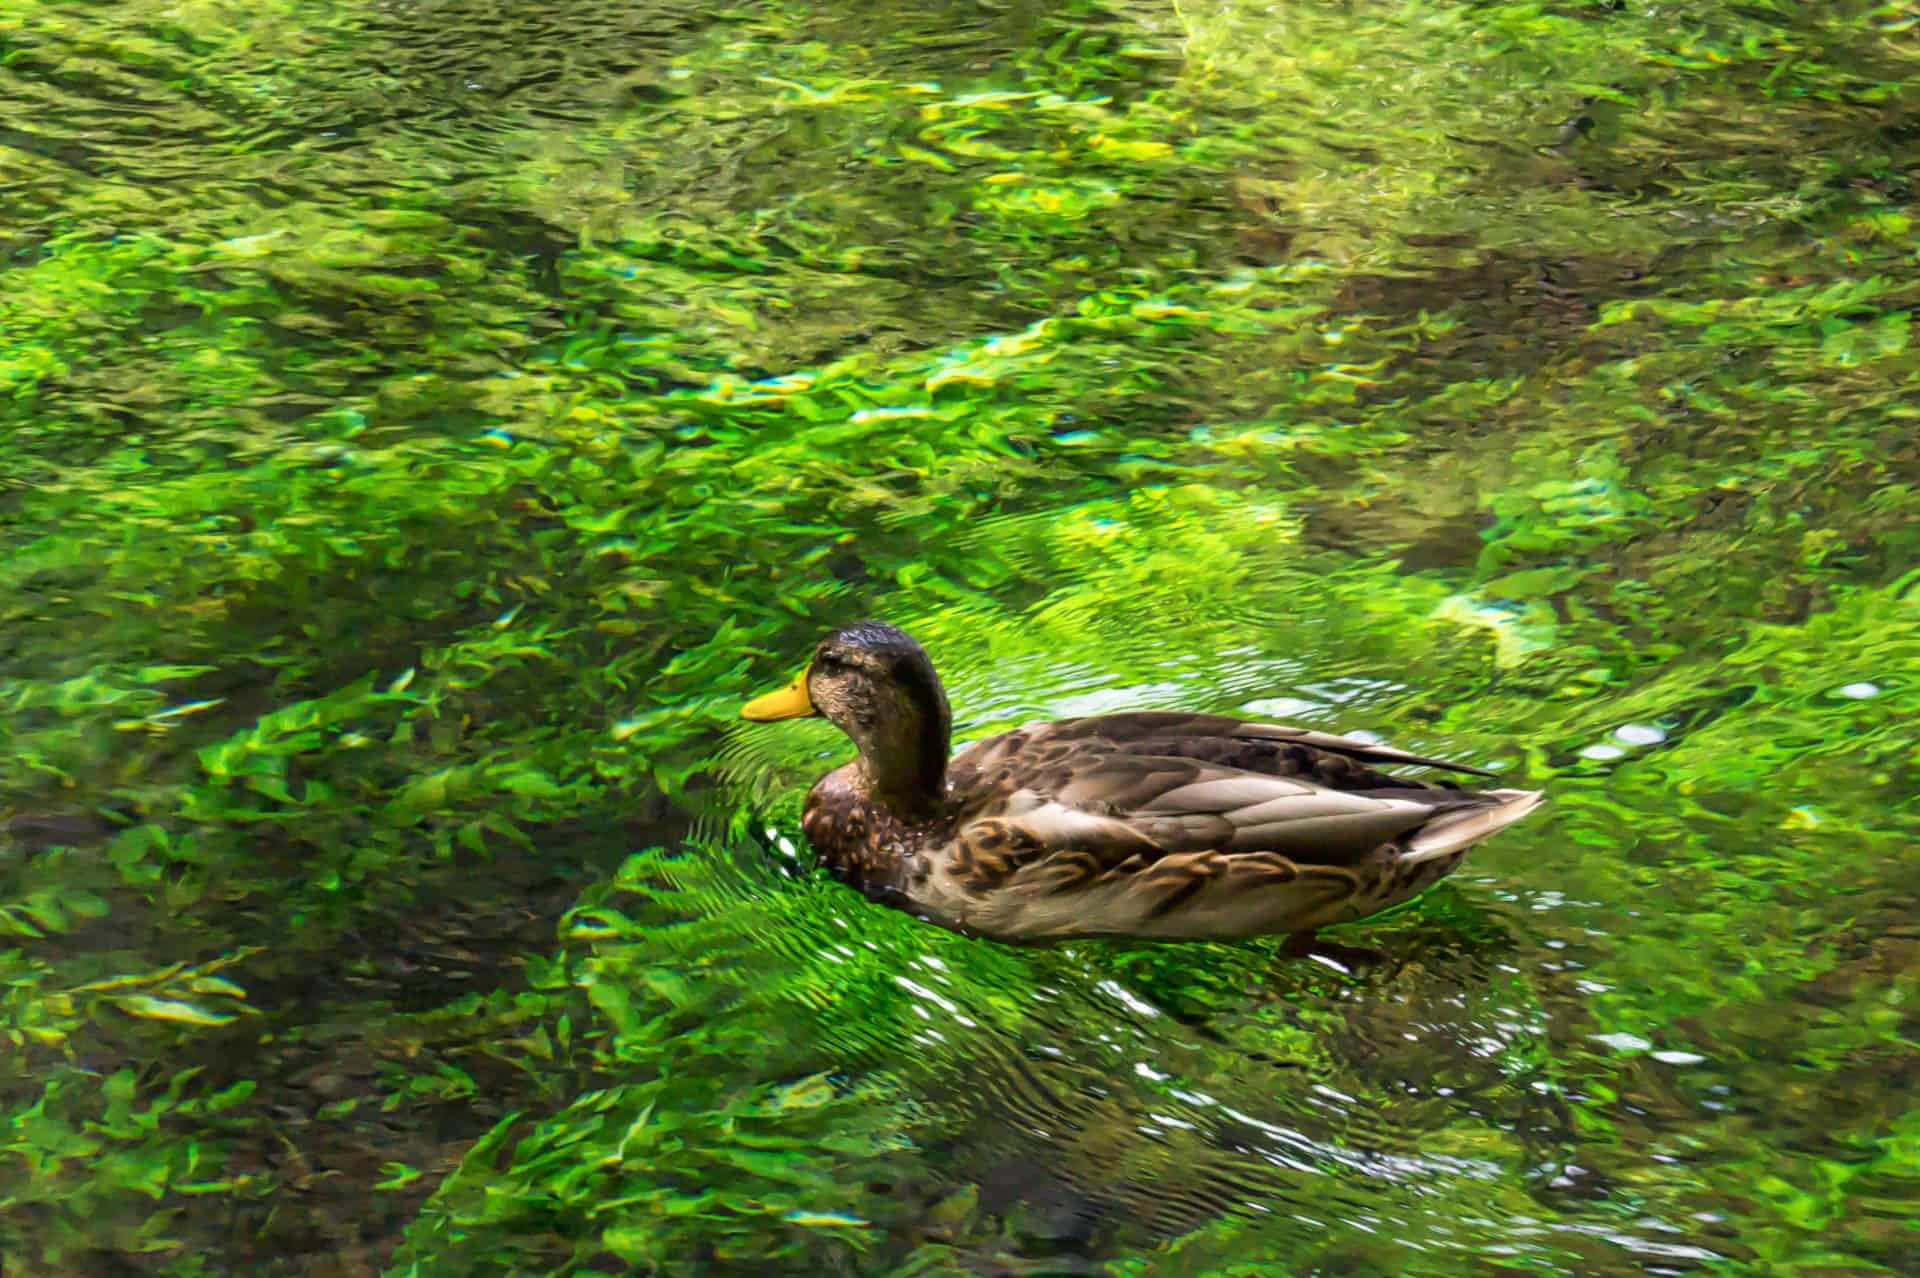 Duck, Fontaine-de-Vaucluse, France -01081